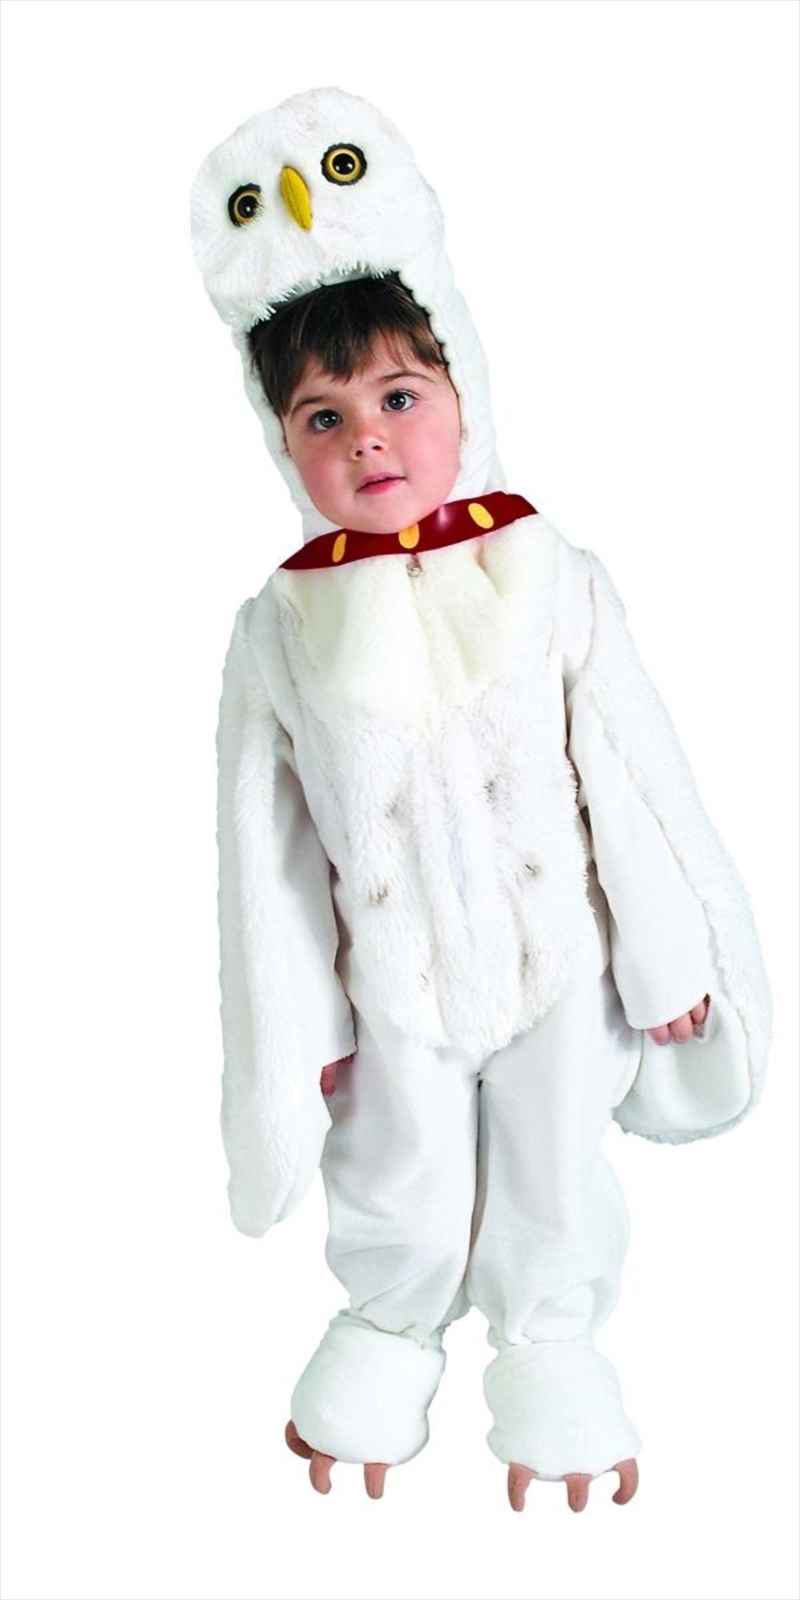 Hedwig The Owl Deluxe Costume: Small | Apparel